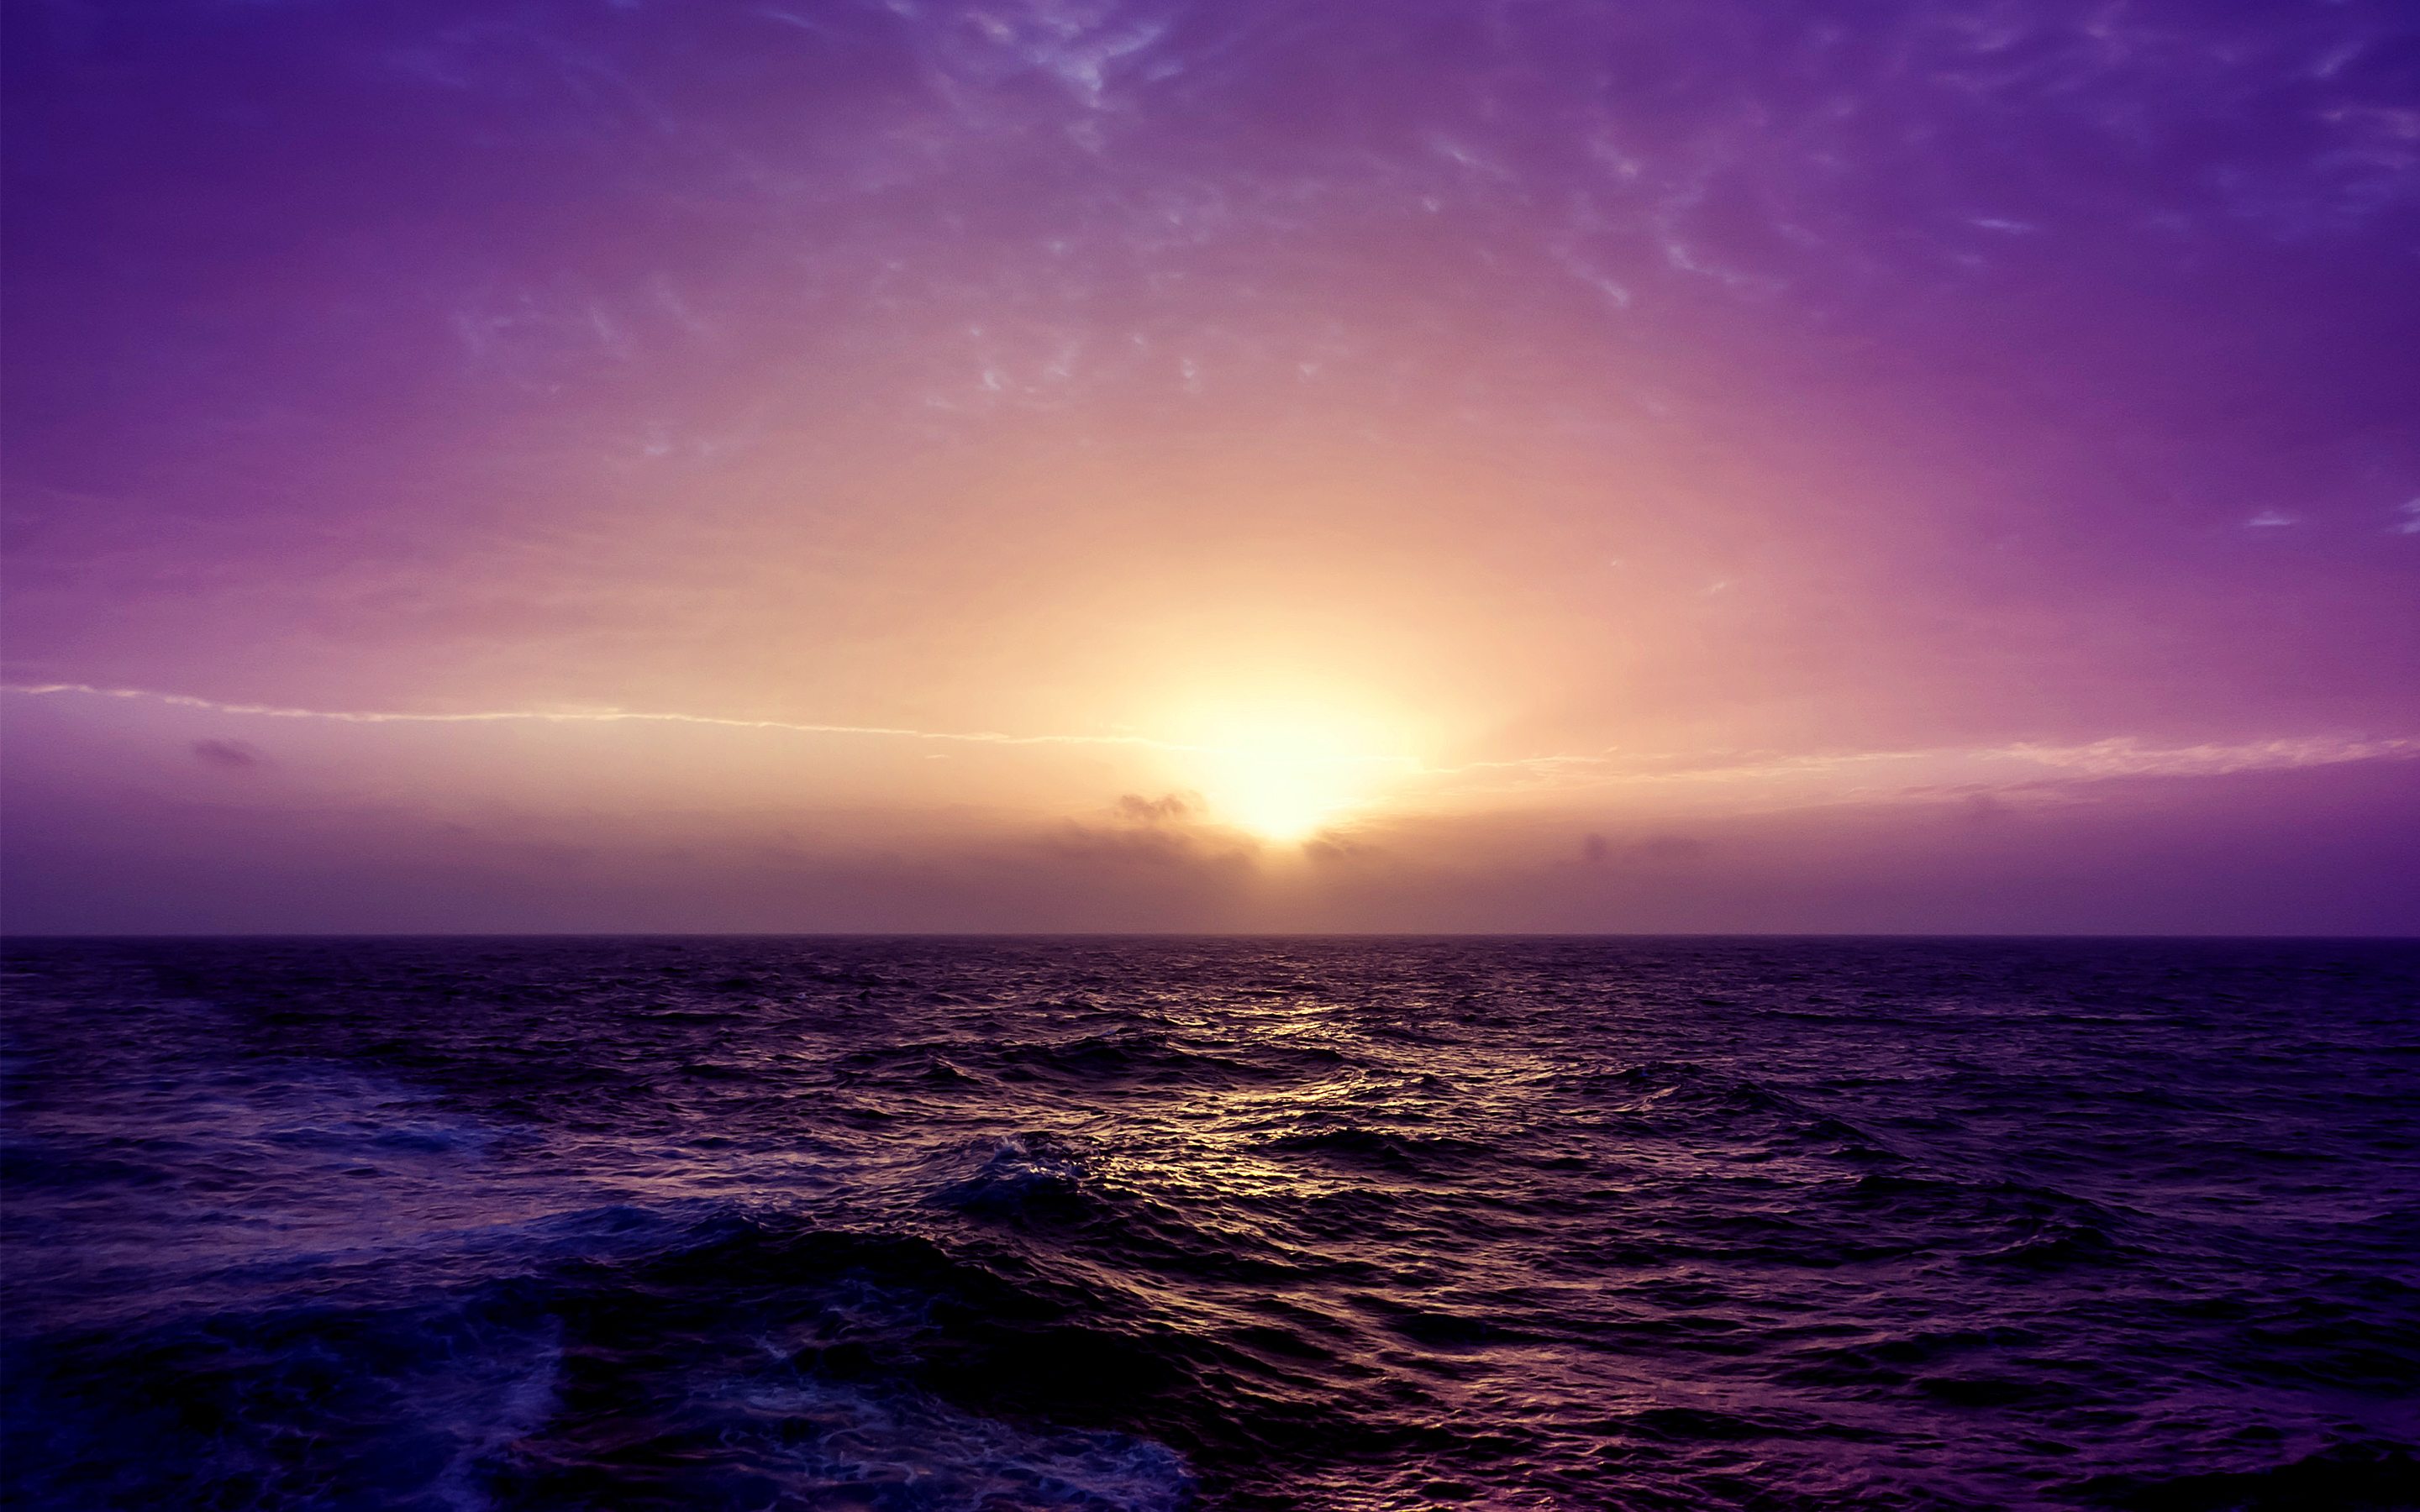 Purple Sea Sunset Wallpapers | HD Wallpapers